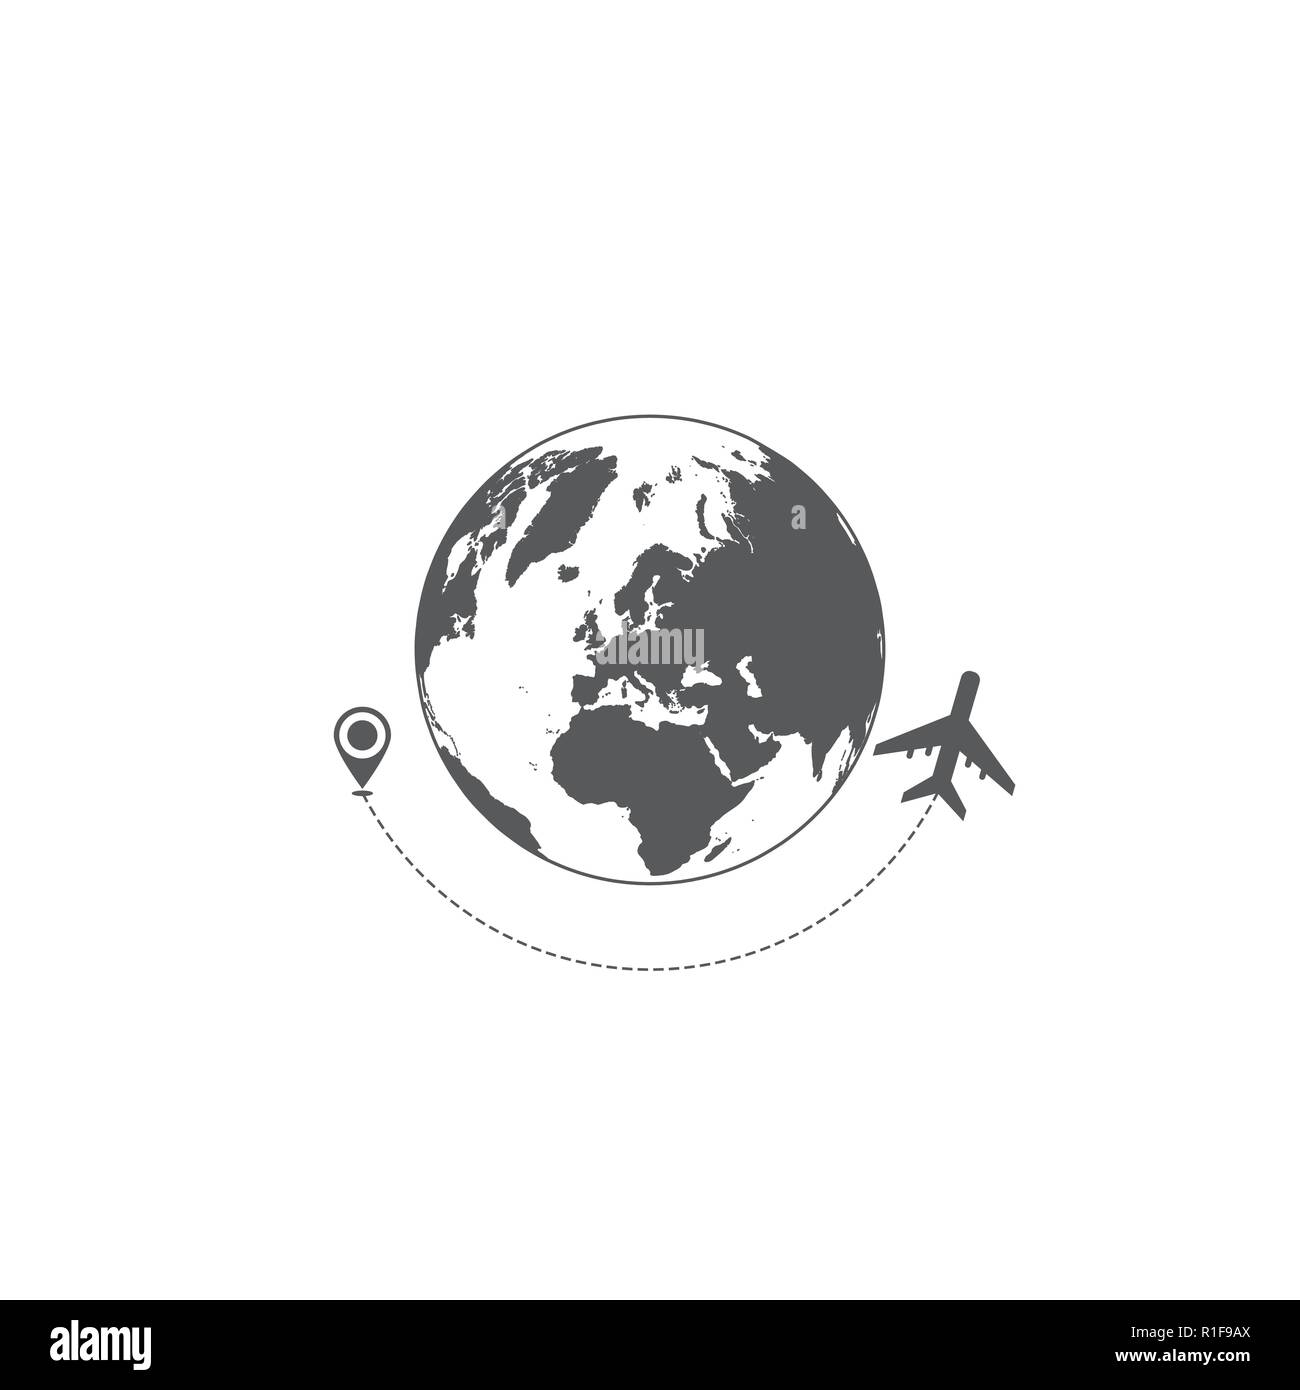 Gray world map and airplane travel silhouettes isolated on white background - Stock Image